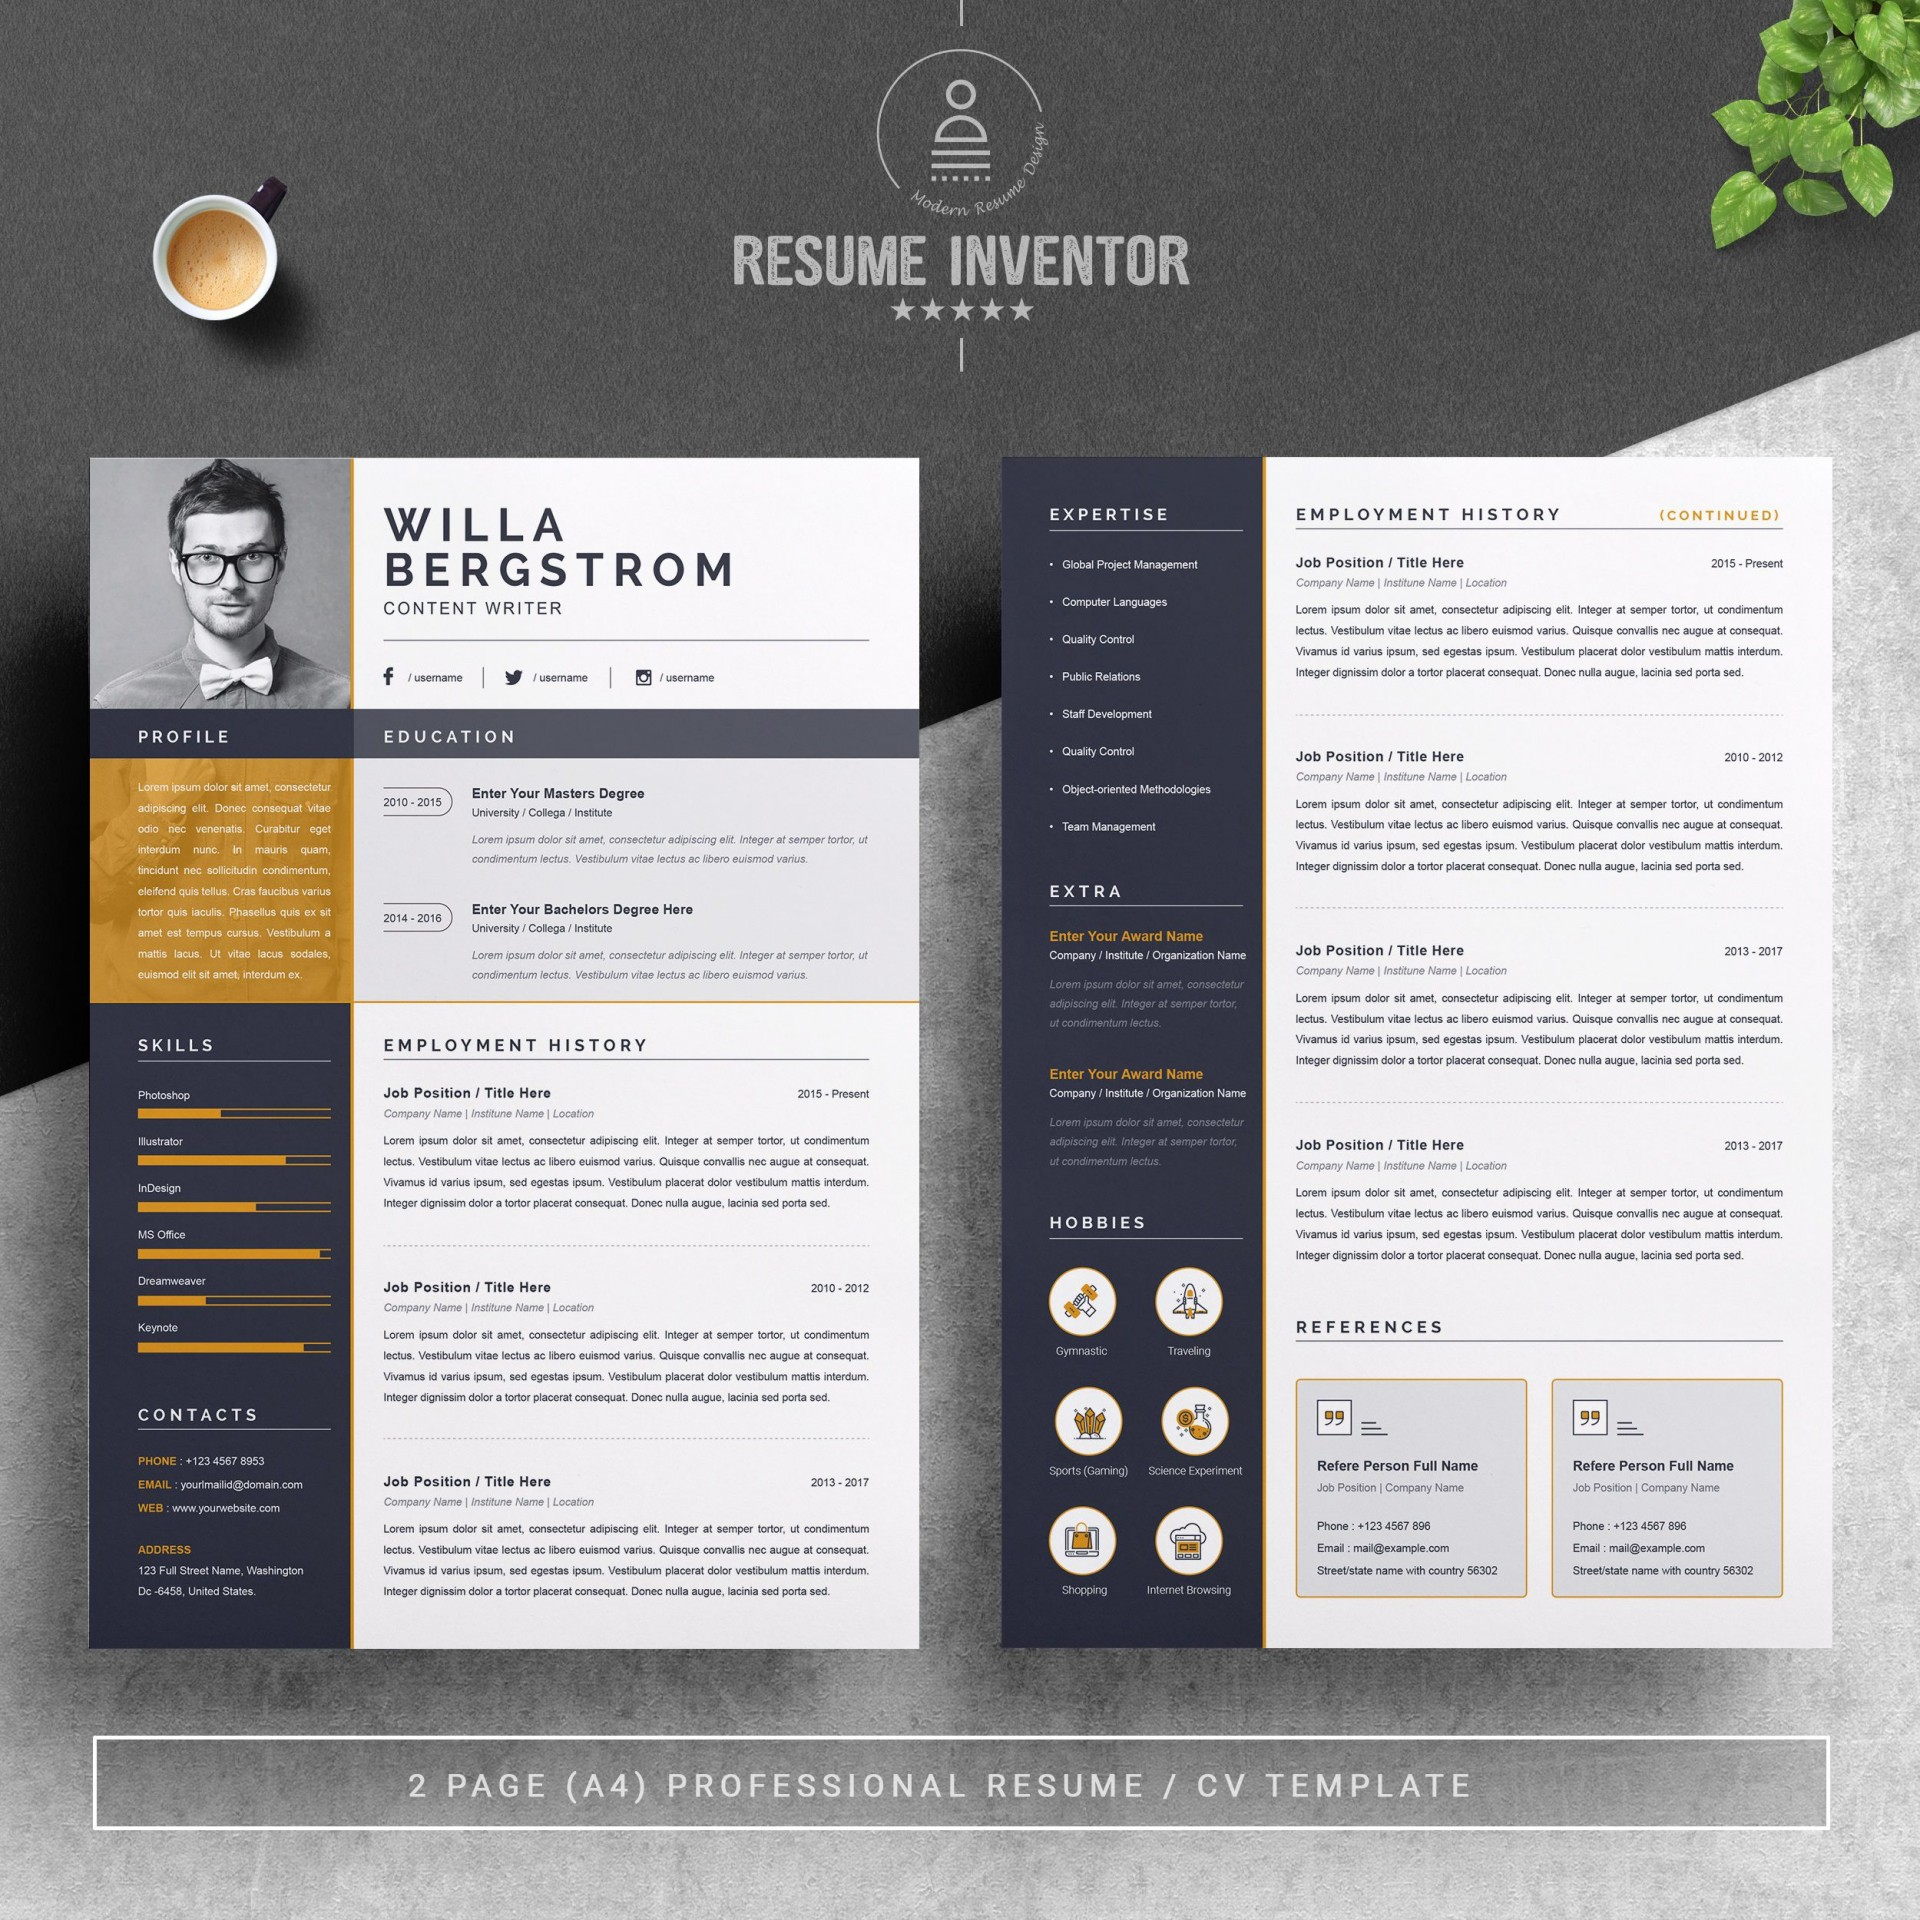 001 Best Resume Template Word 2016 Highest Clarity  Cv Professional1920